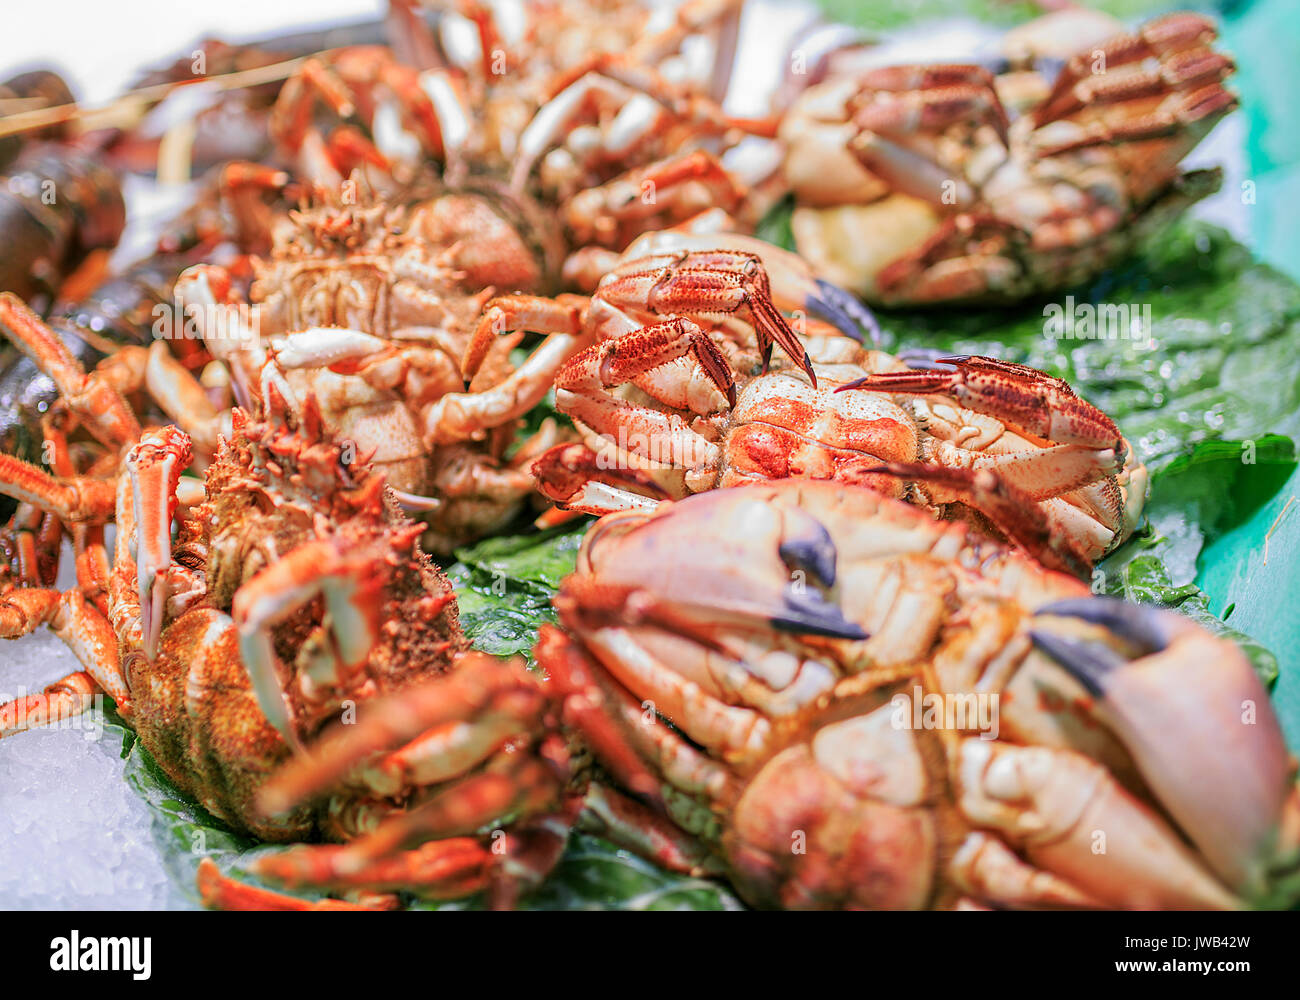 Fresh seafood in a food market of Barcelona - Stock Image